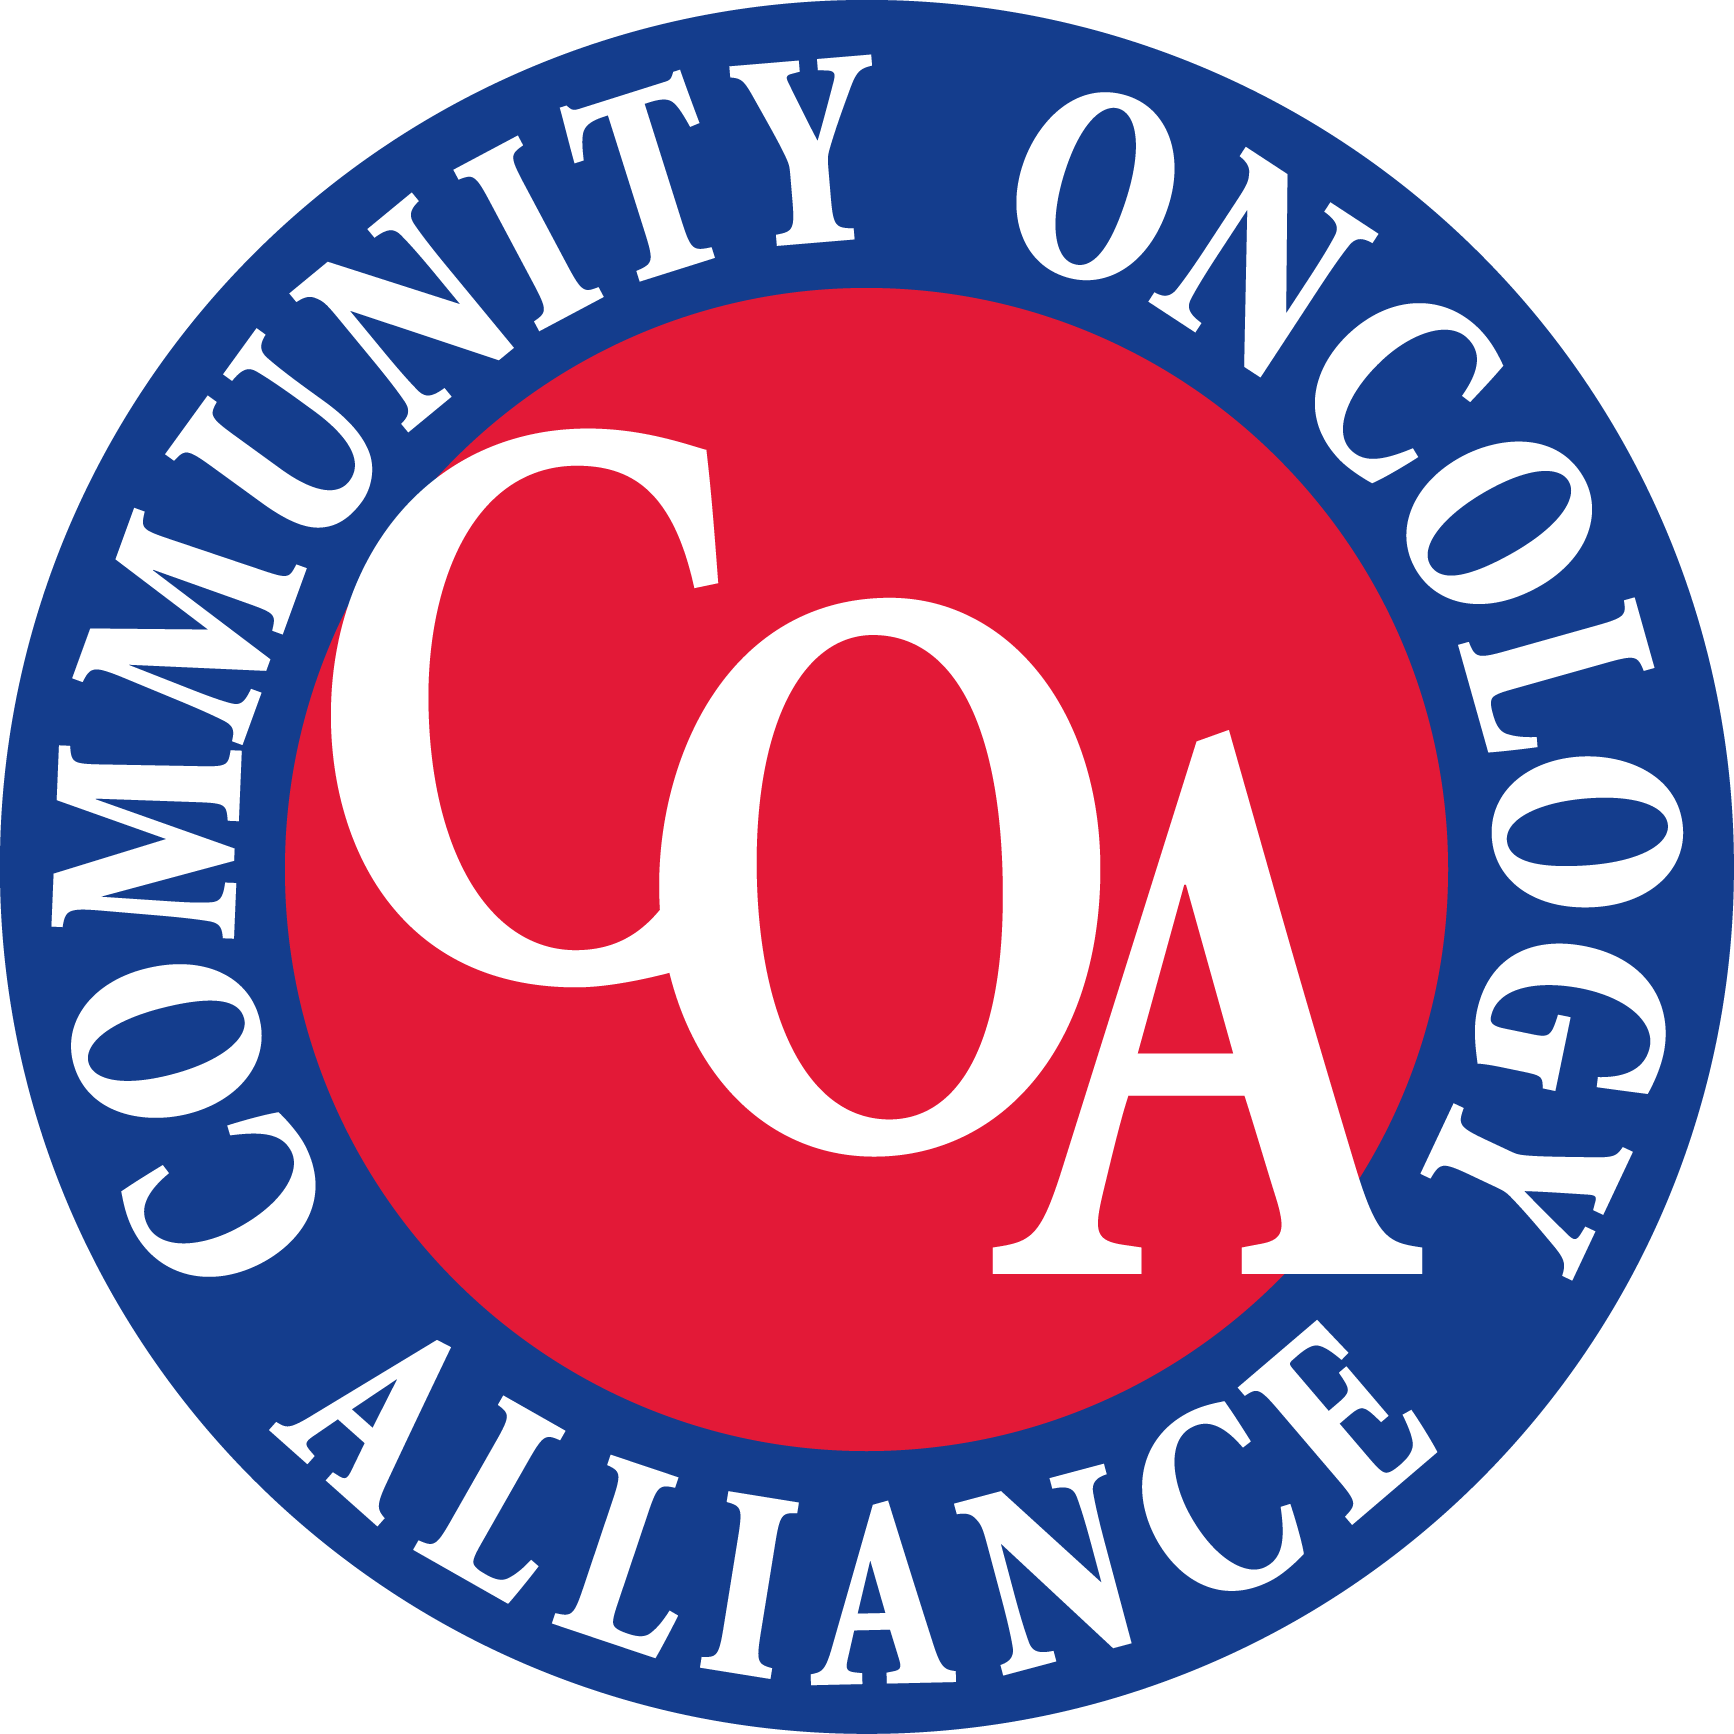 The Community Oncology Alliance (COA) logo